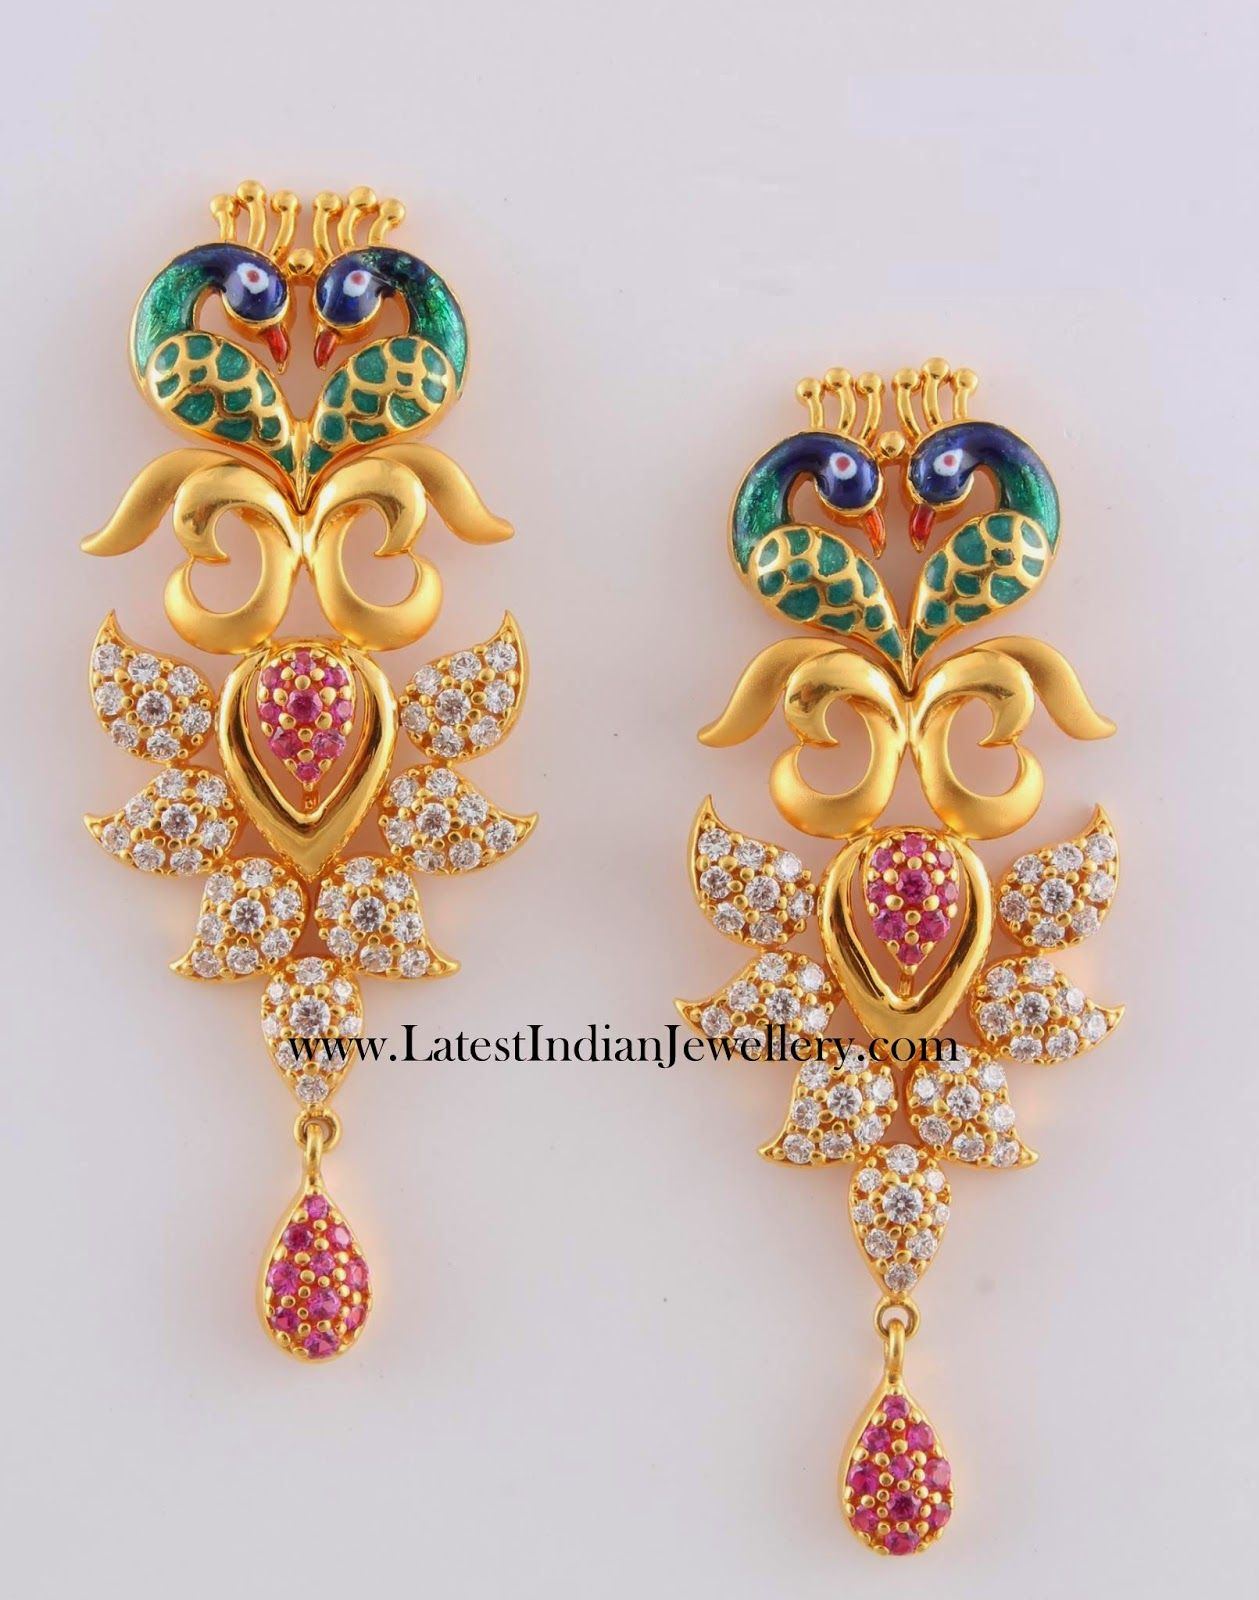 gold par amz women bollywood itm indian jewellery wedding jewelry earring earrings jhumka plated